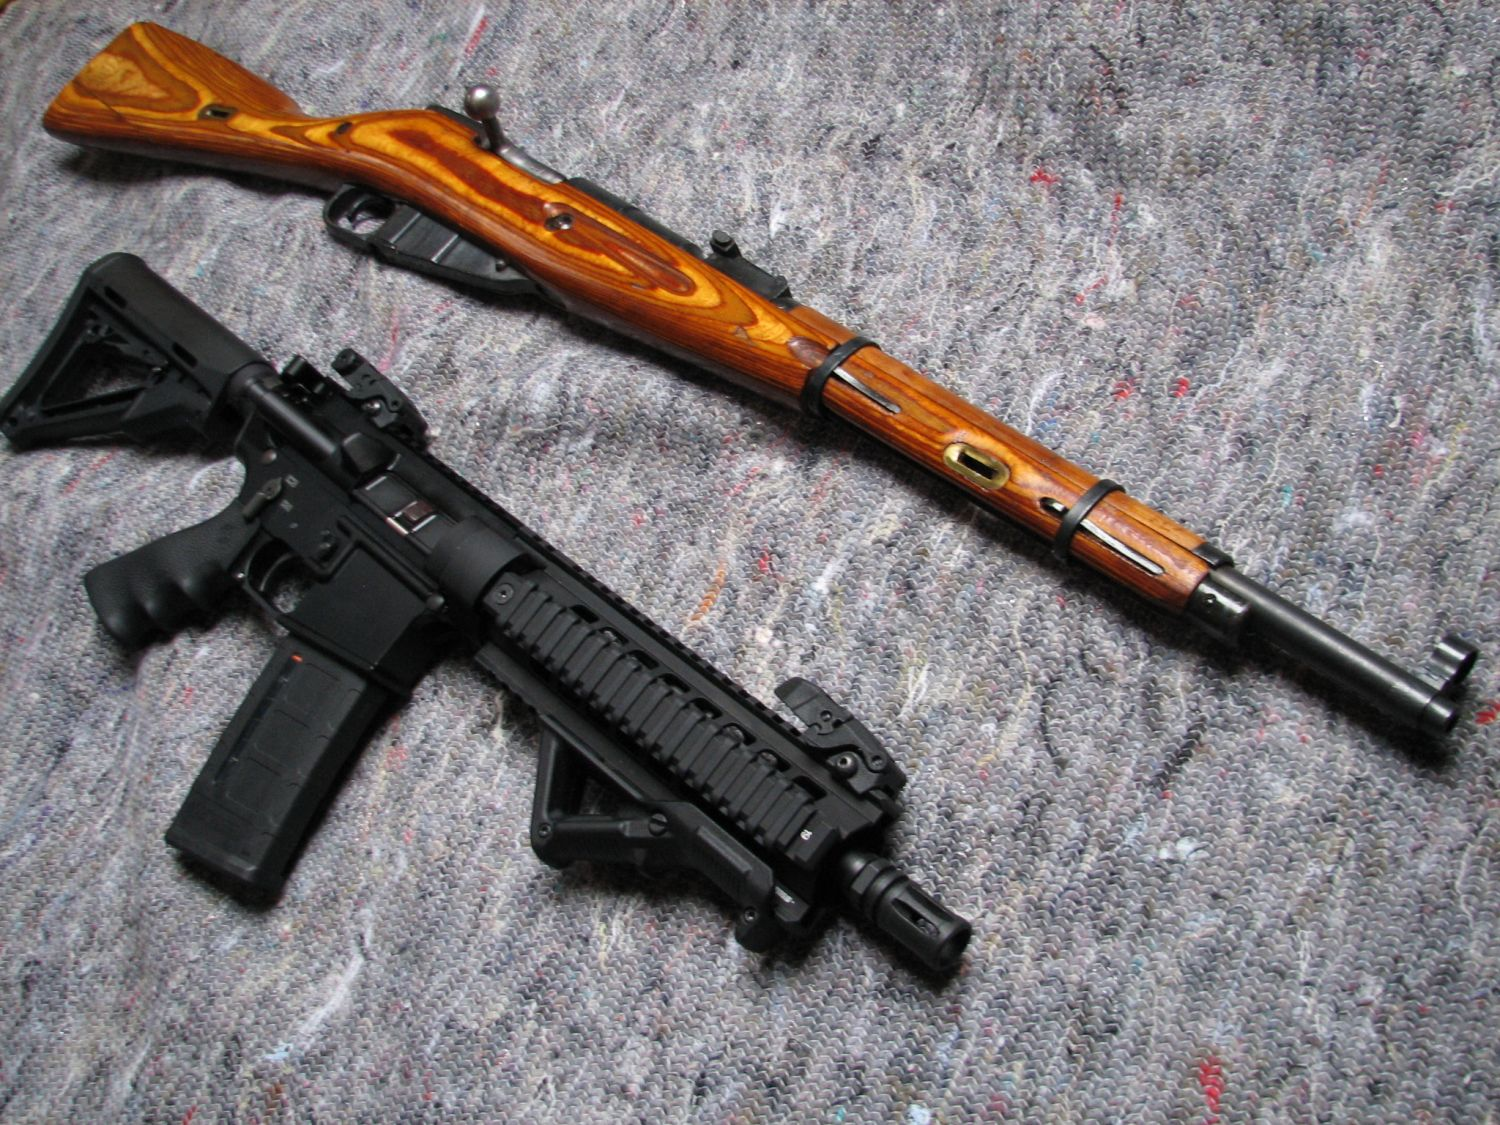 guns weapons mosin nagant magpul ar 15 m44 carabine HD Wallpaper 1500x1125